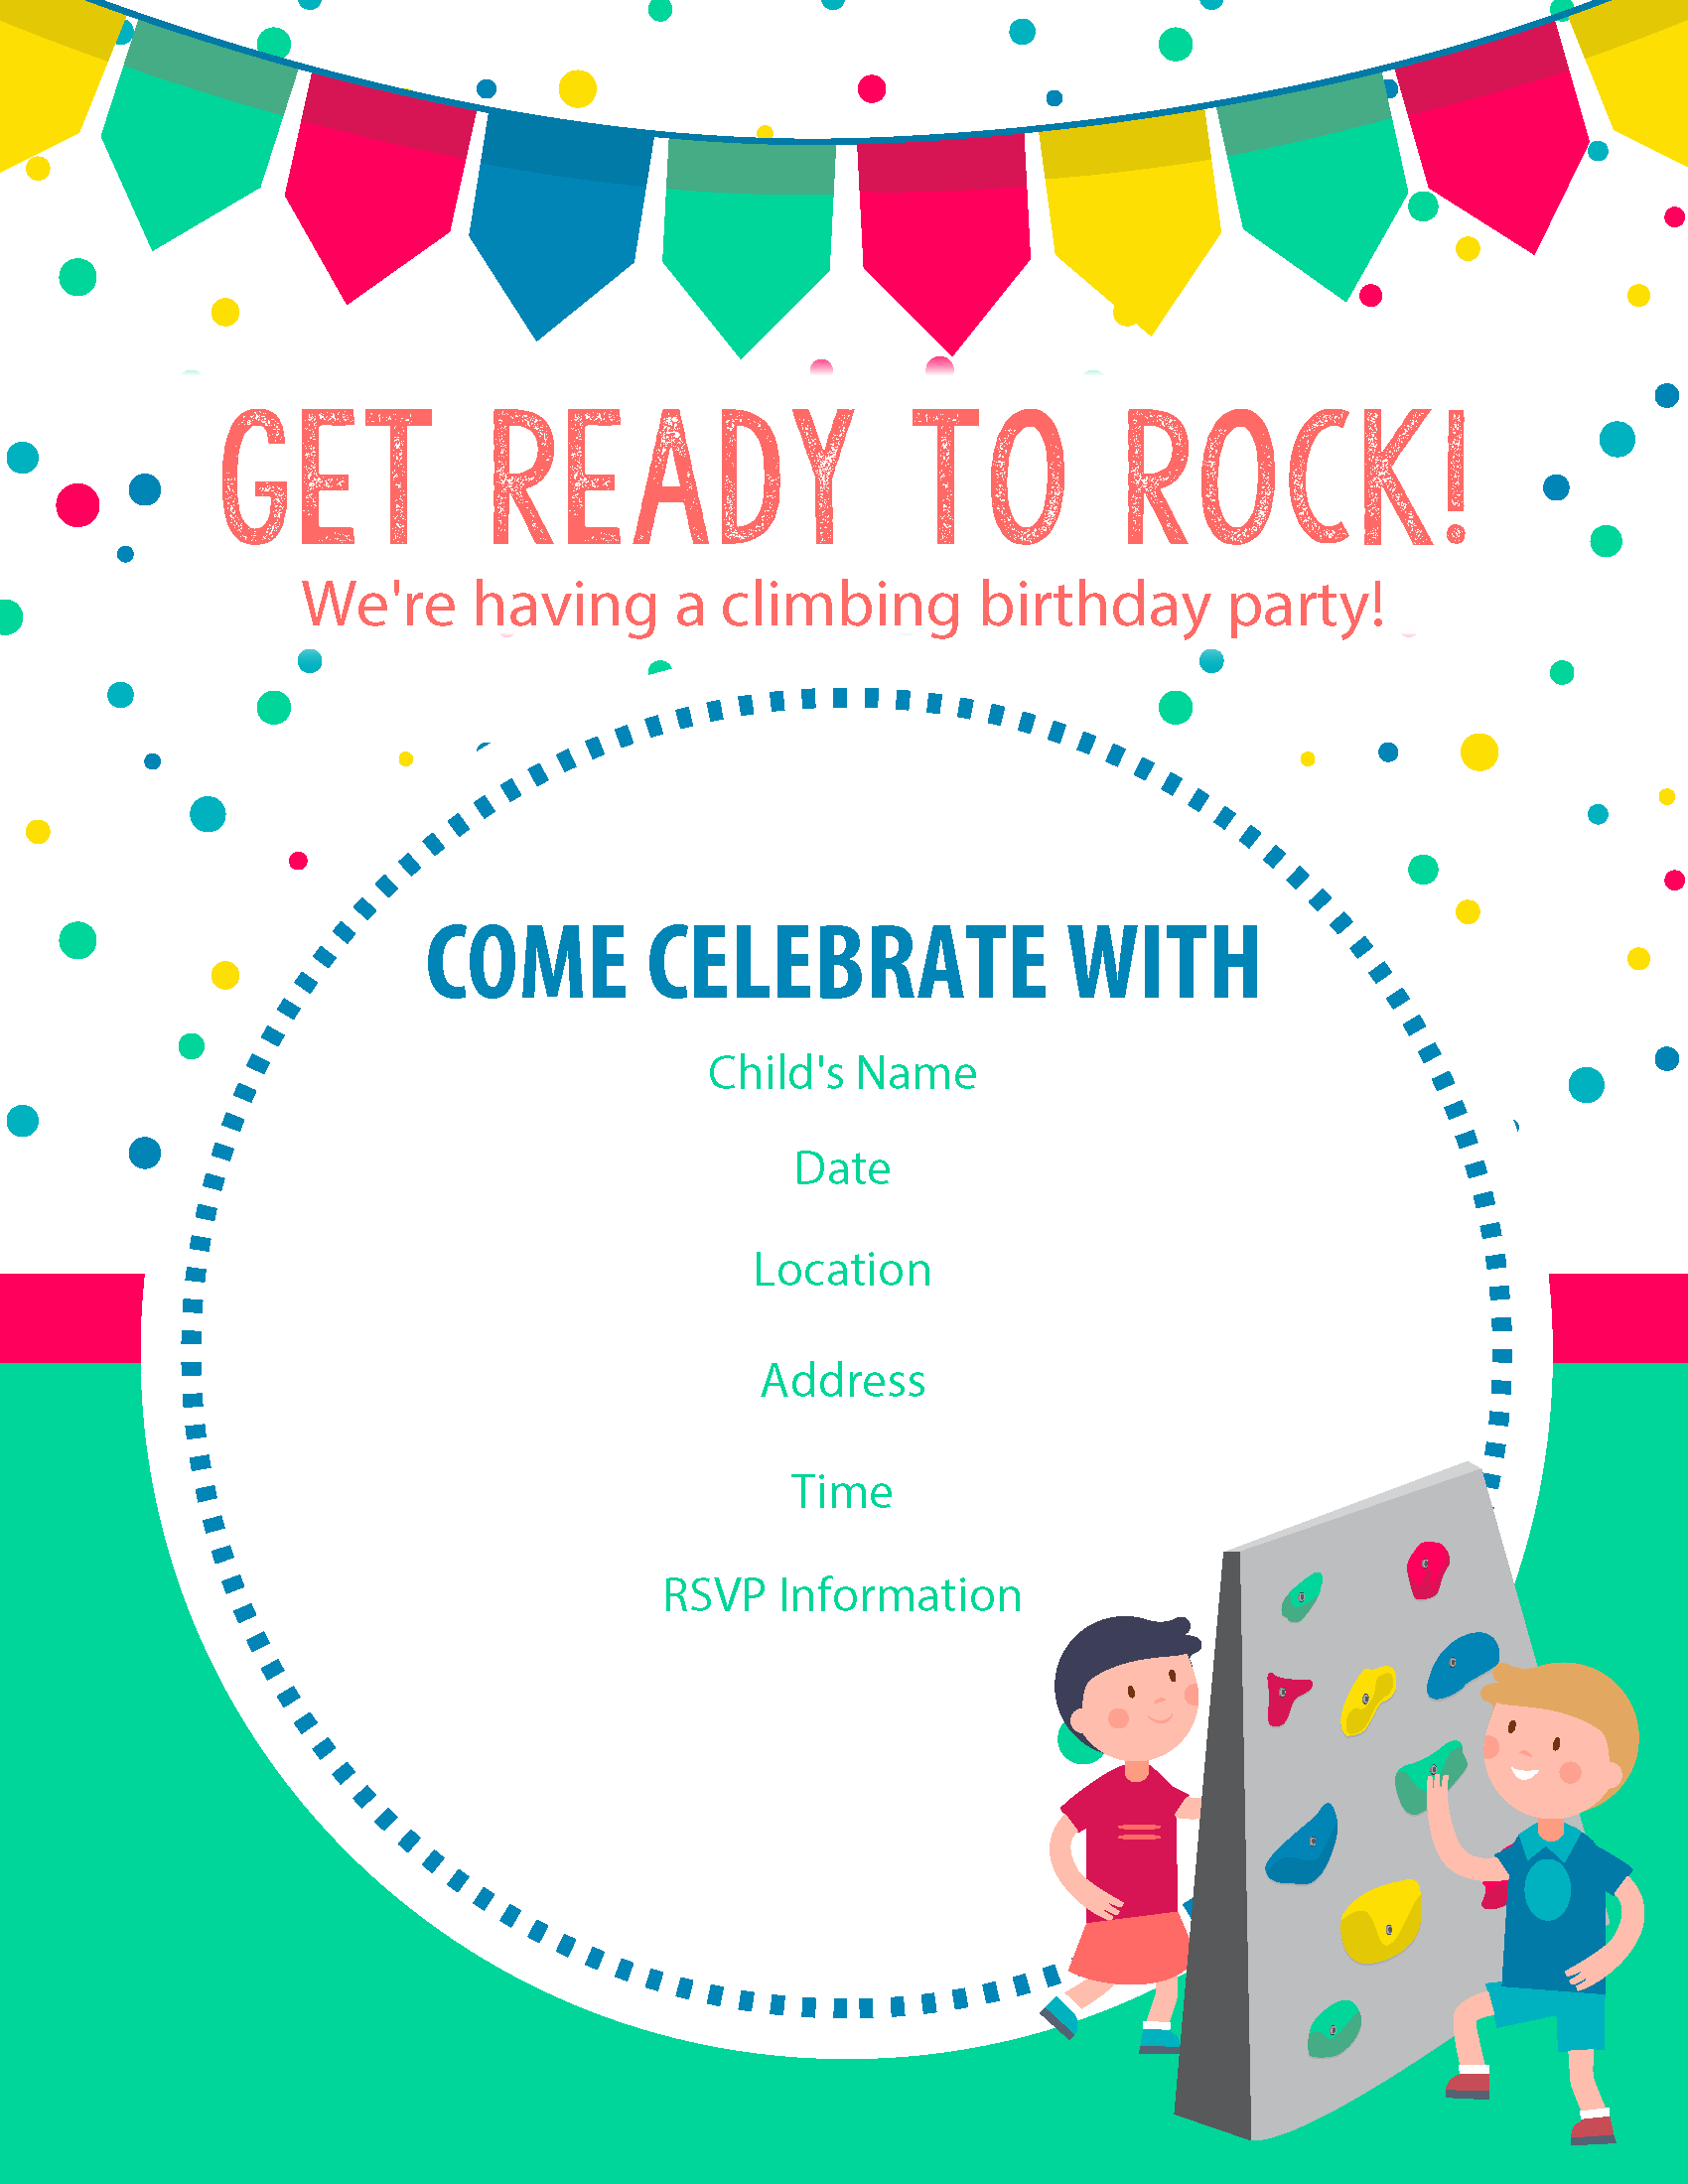 Happy birthday free rock climbing birthday party invitations one of our free rock climbing birthday party invitations stopboris Gallery